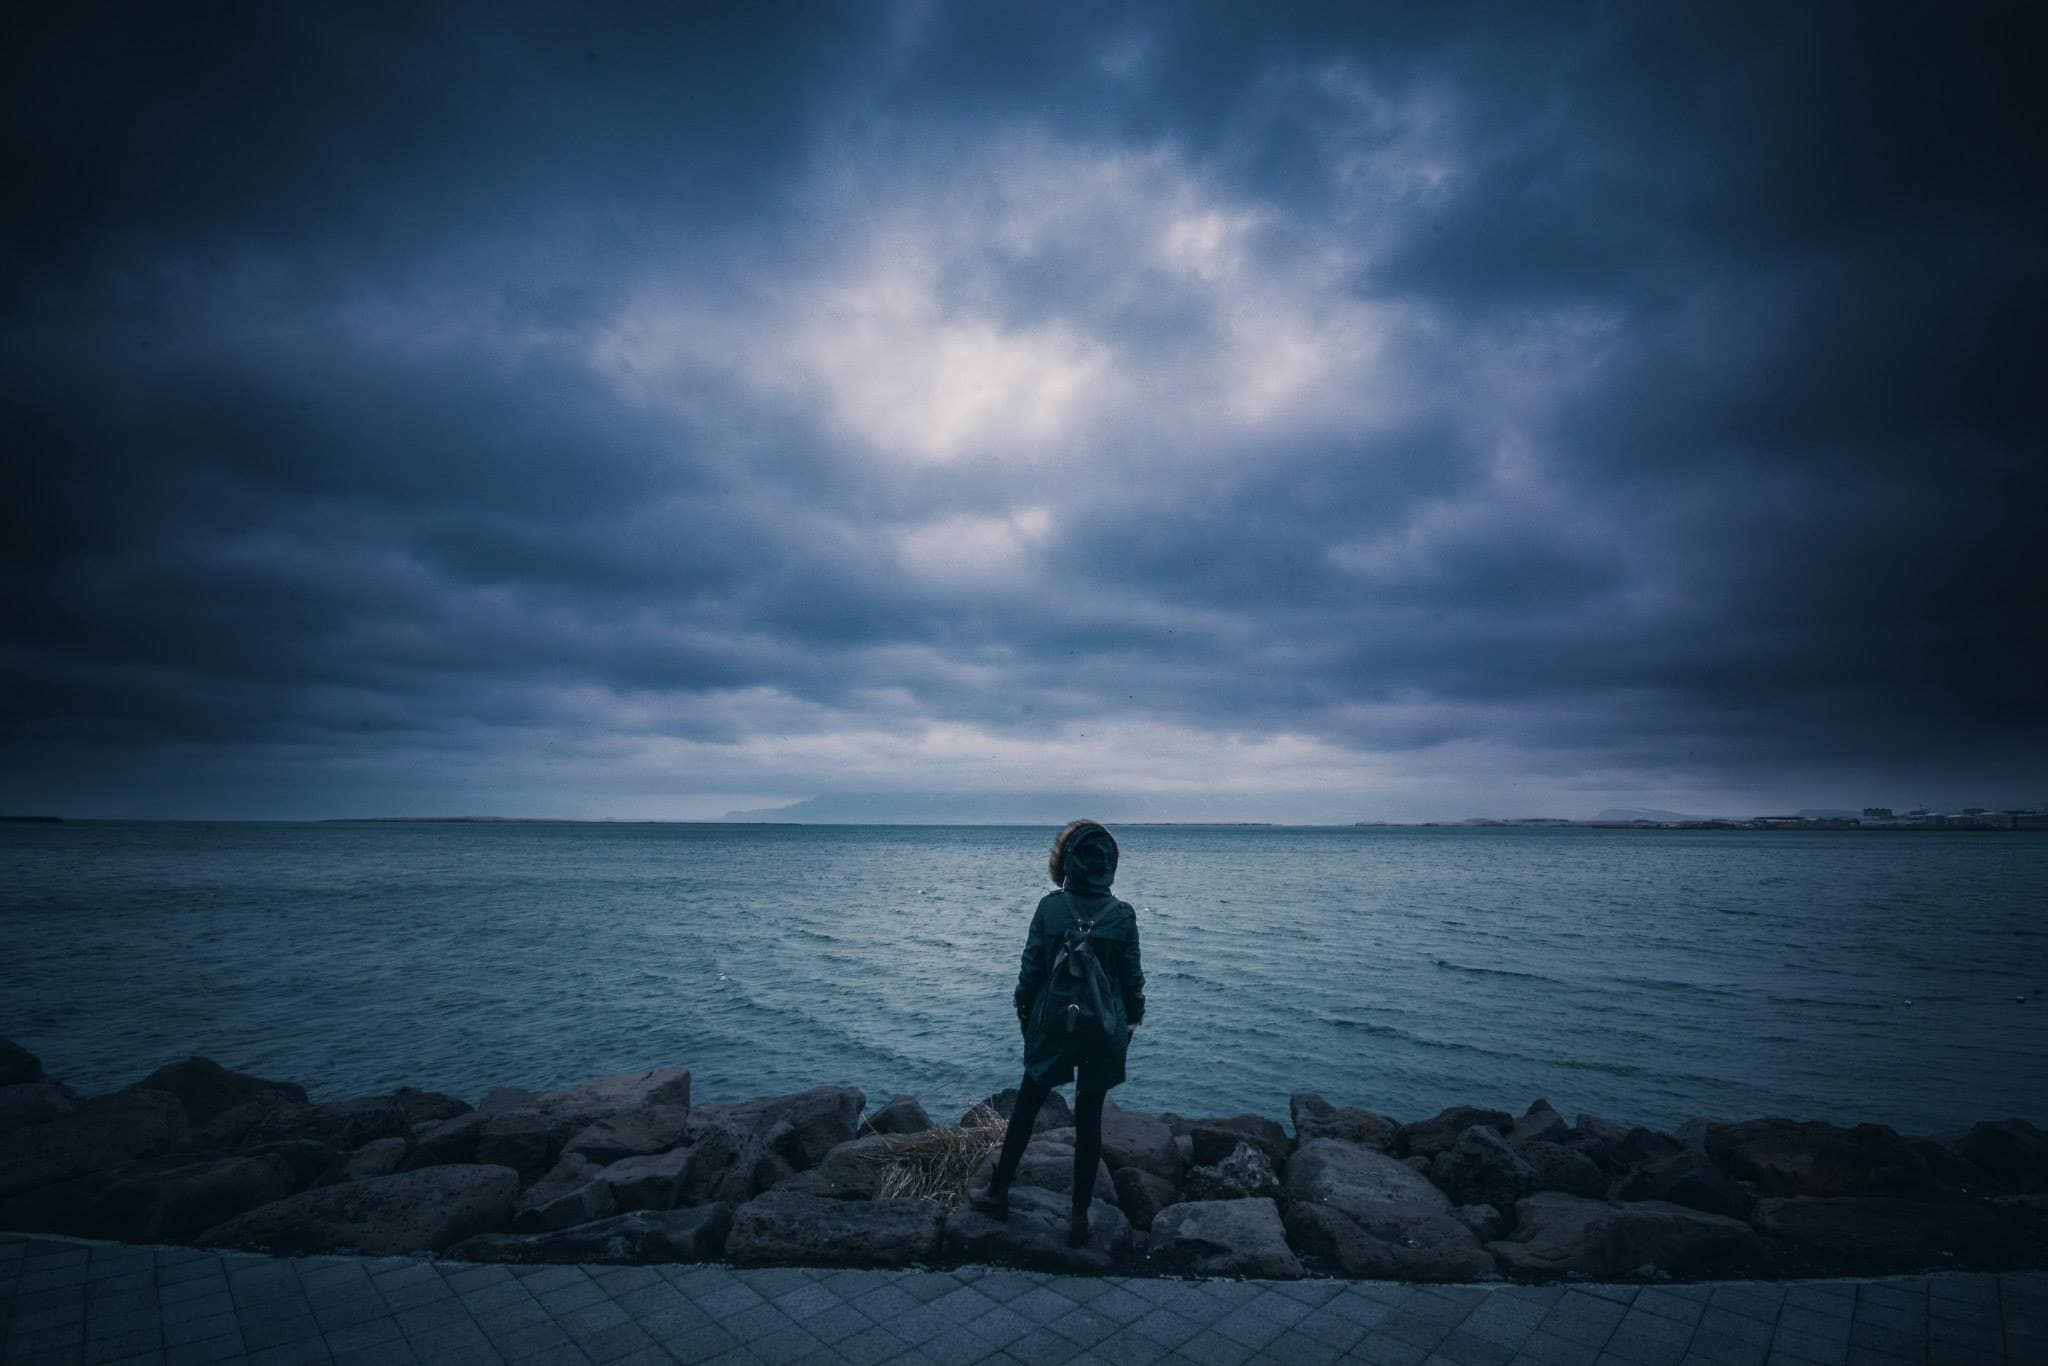 A man with depression looking out over the water